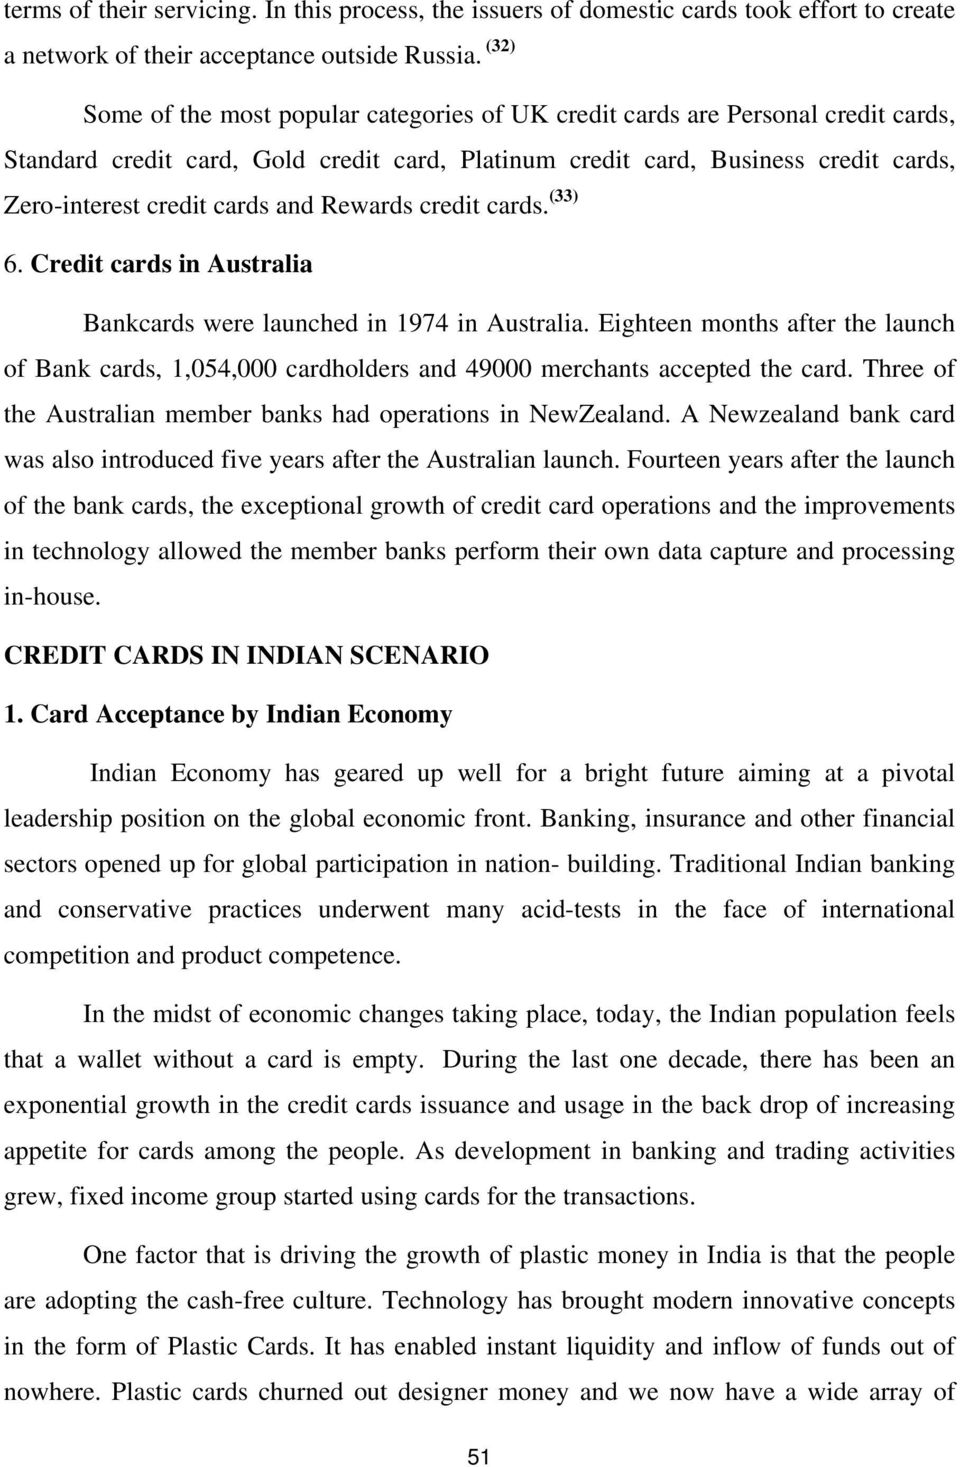 Icici Credit Card Reward Points Catalogue 2014 Ebook